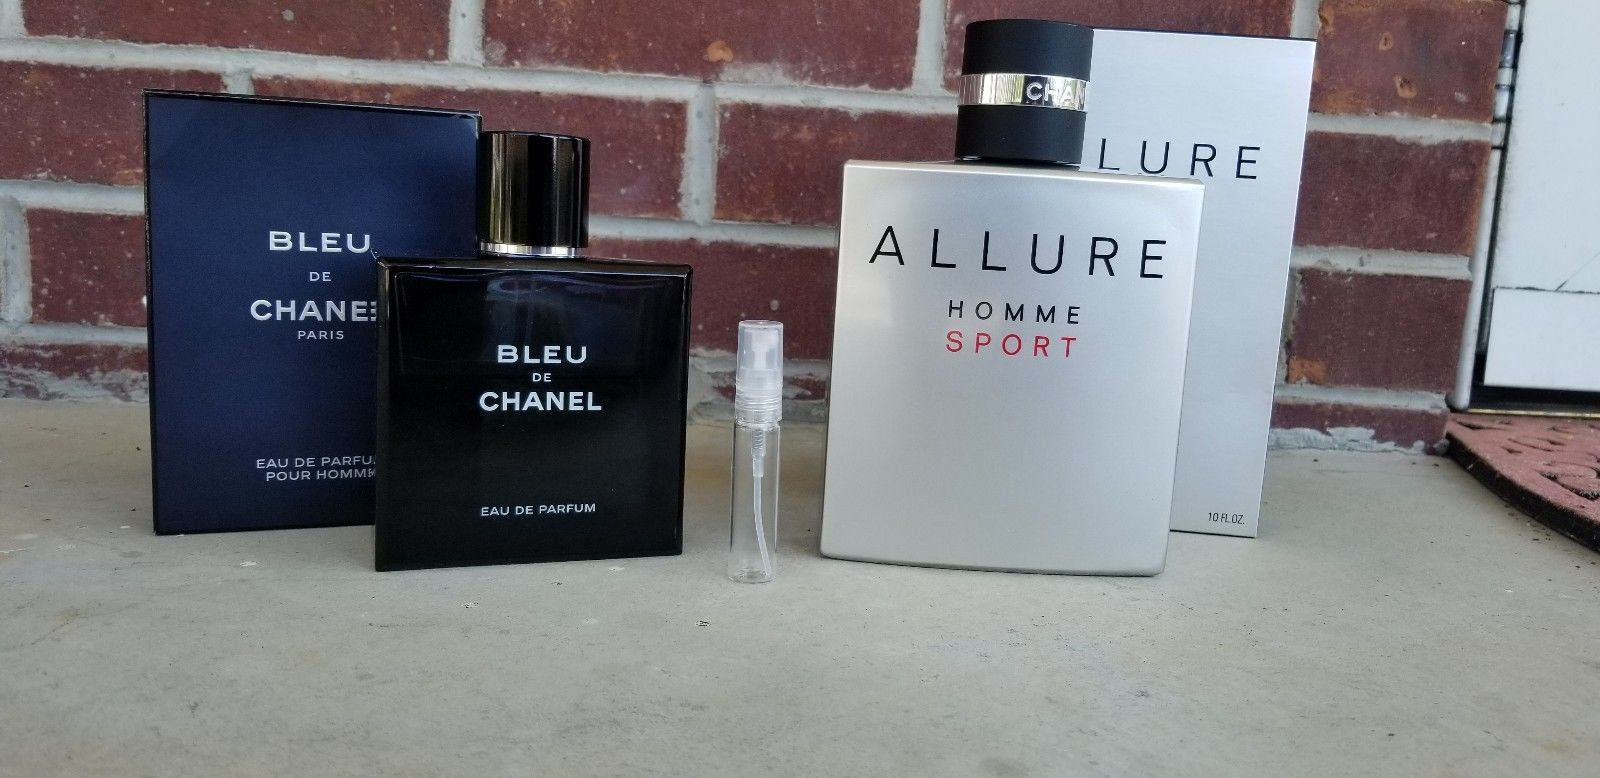 488f685369a6 20.99   NEW! Chanel Allure Homme Sport & Blue de channel samples ...